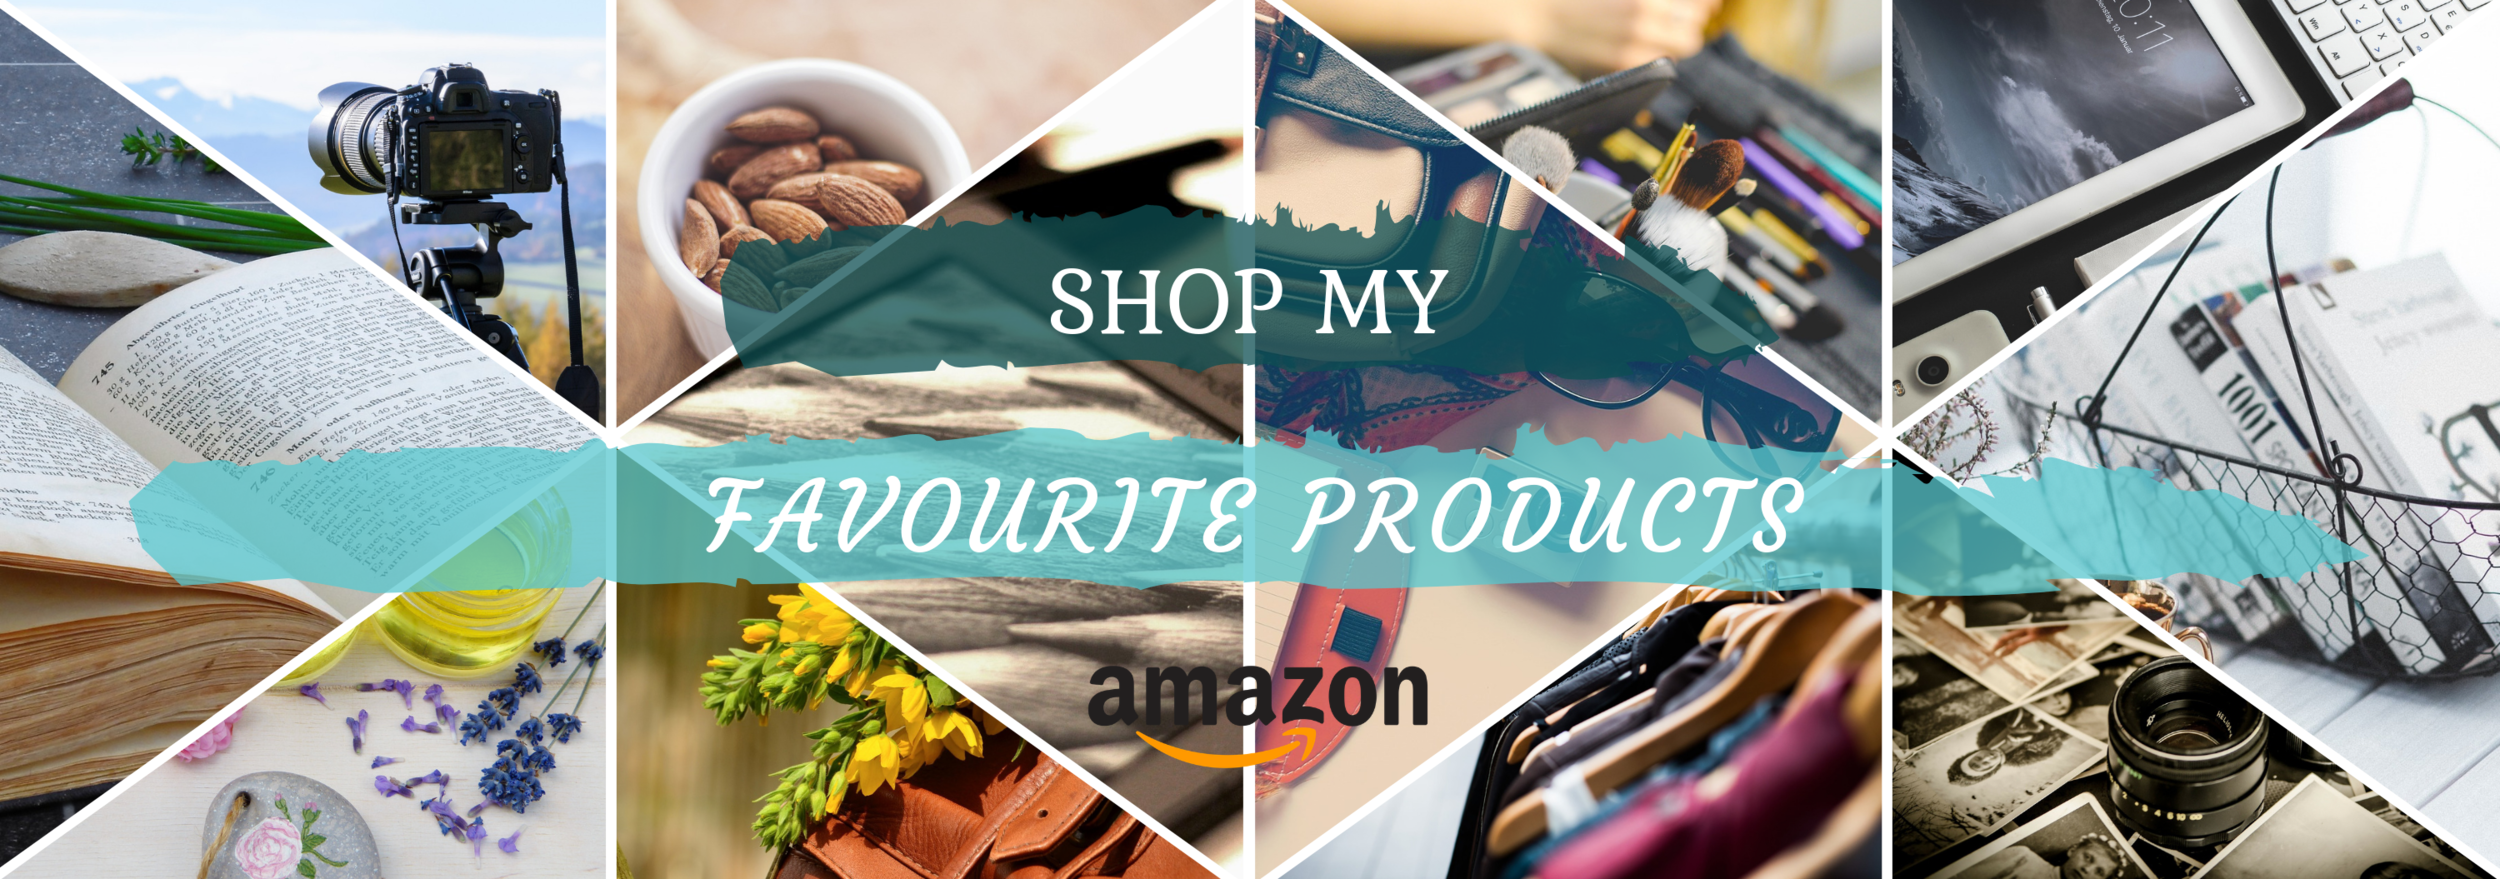 Shop Favourite Products Banner.png